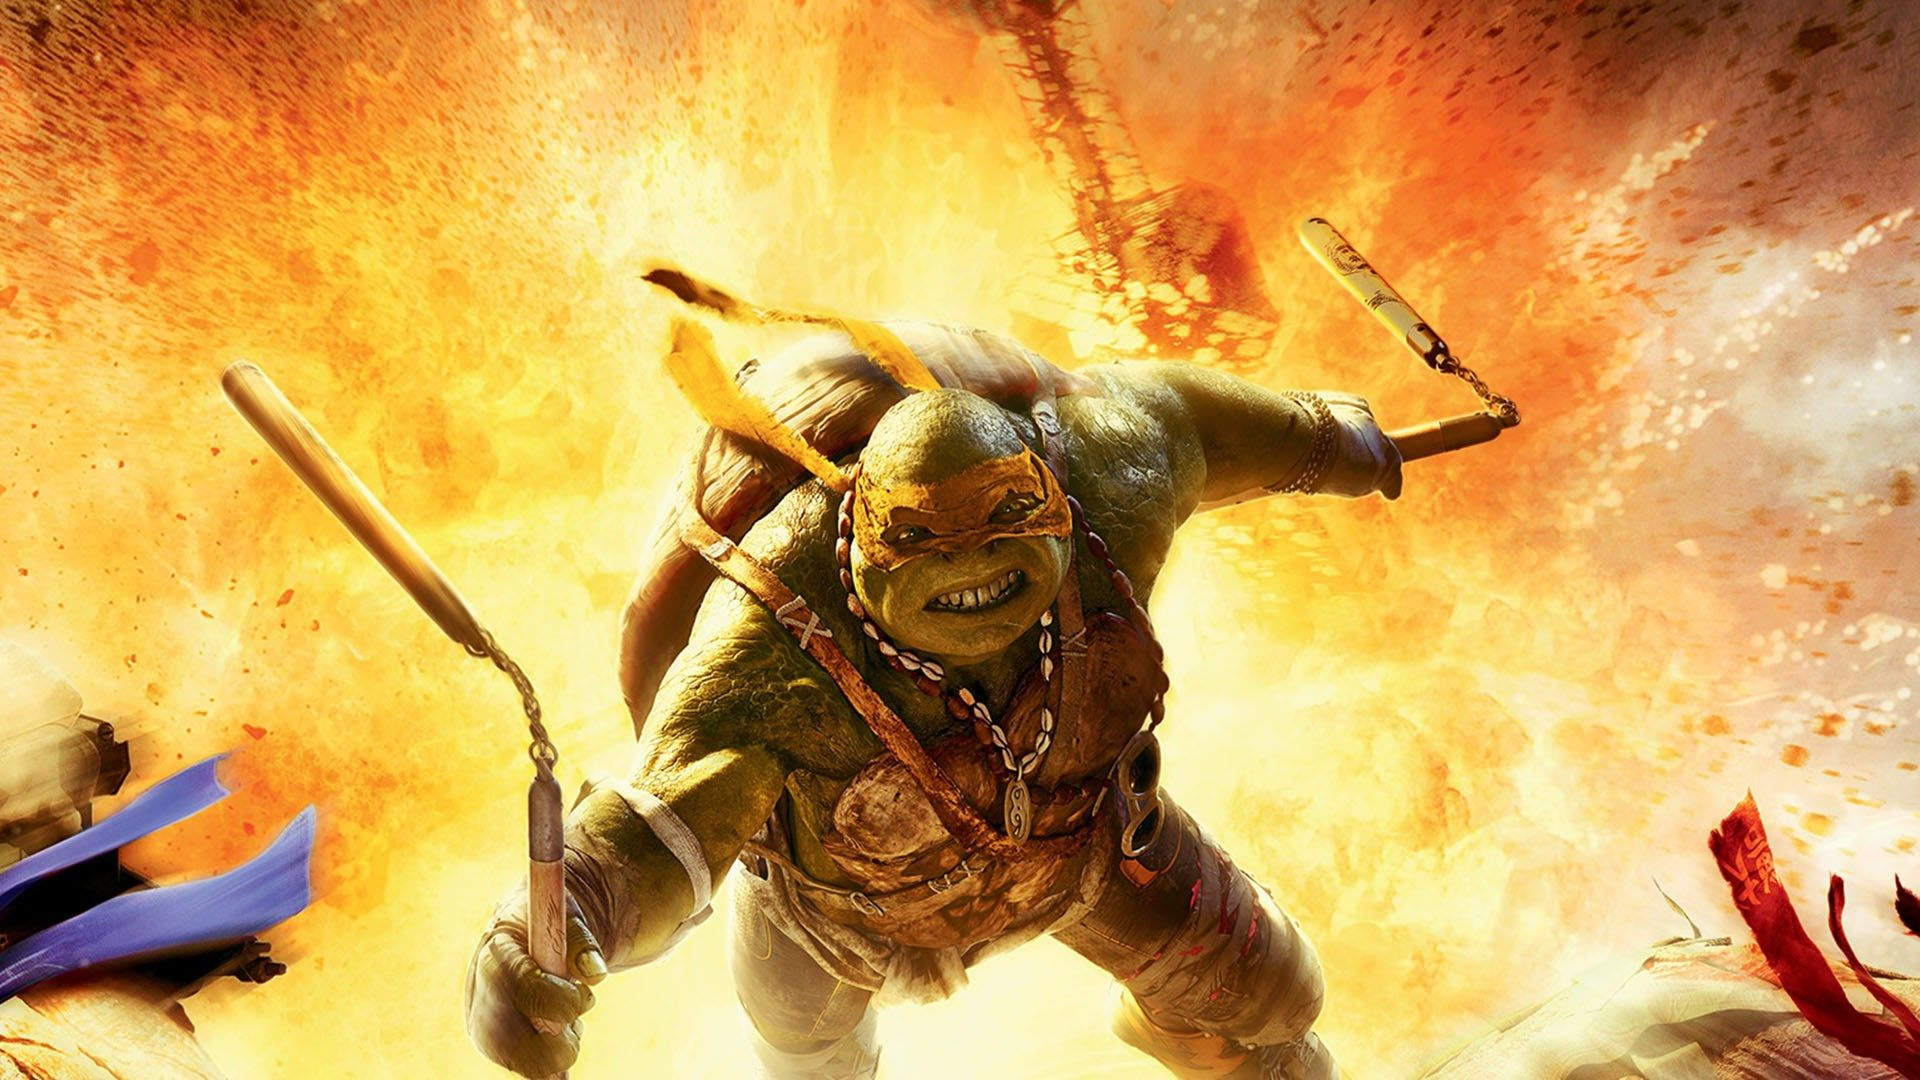 Tmnt Michelangelo Fighting In Explosion Wallpaper Hd